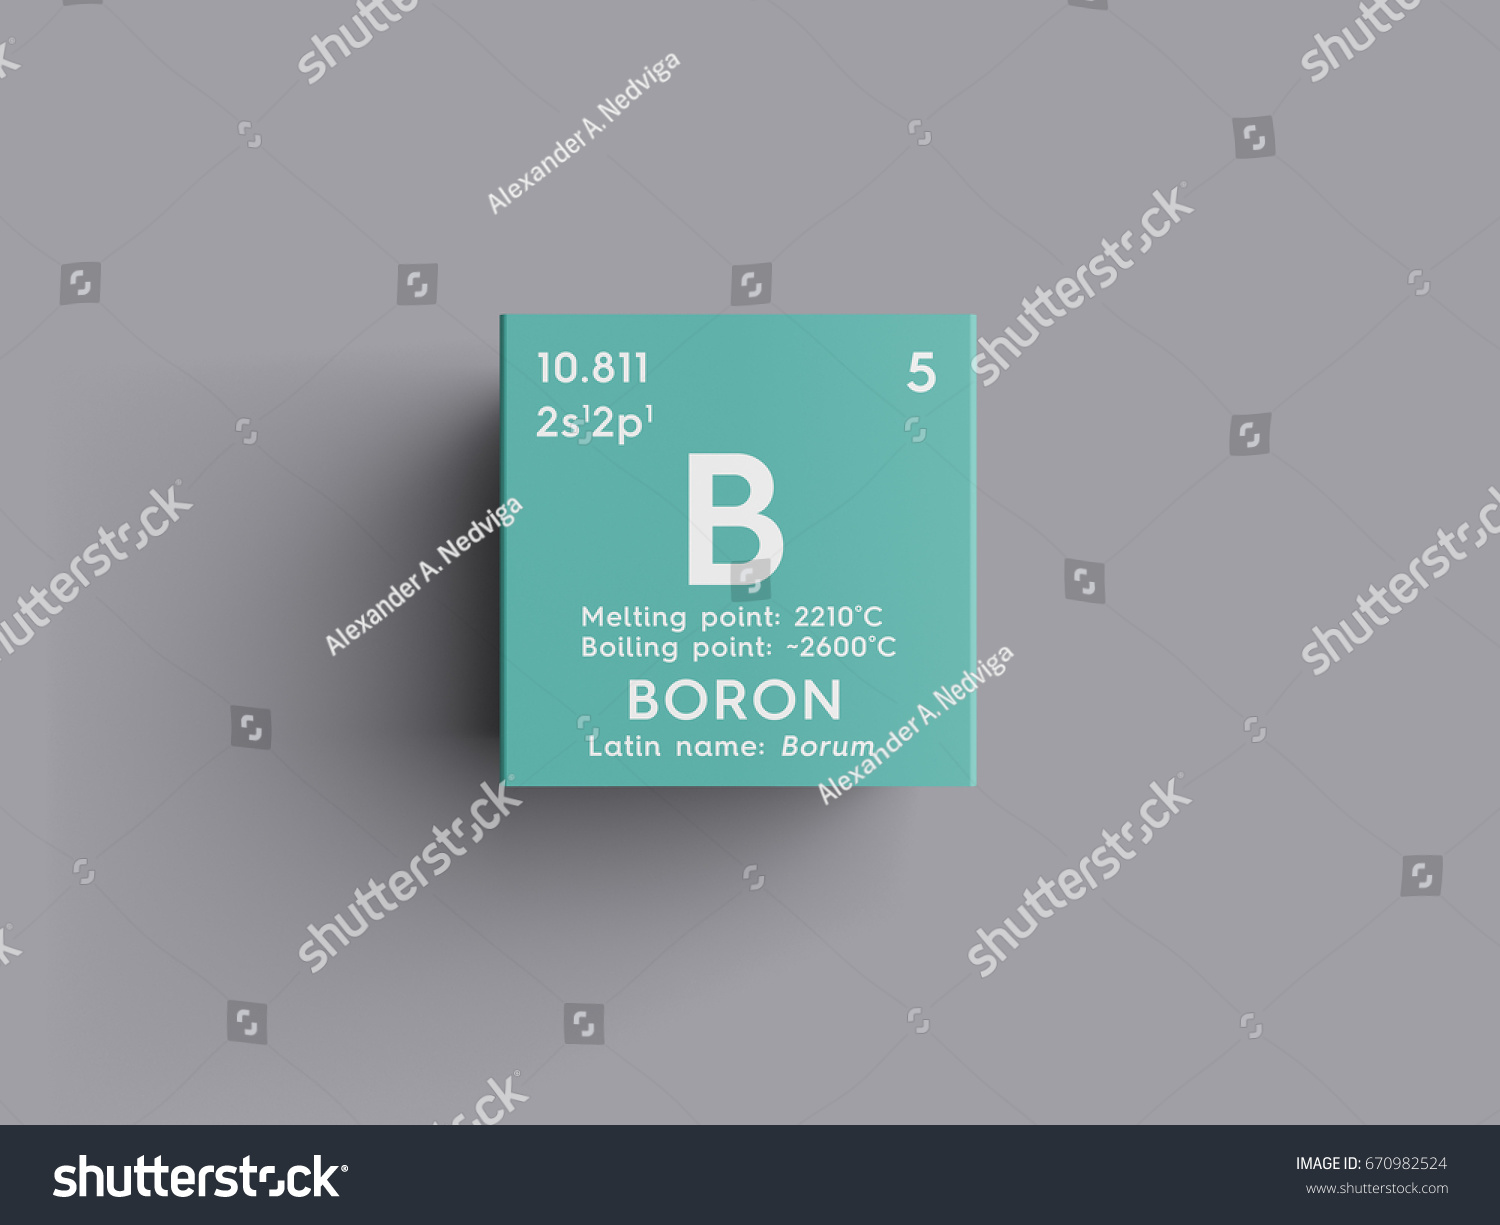 boron chemical element mendeleevs periodic table stock illustration 670982524 shutterstock